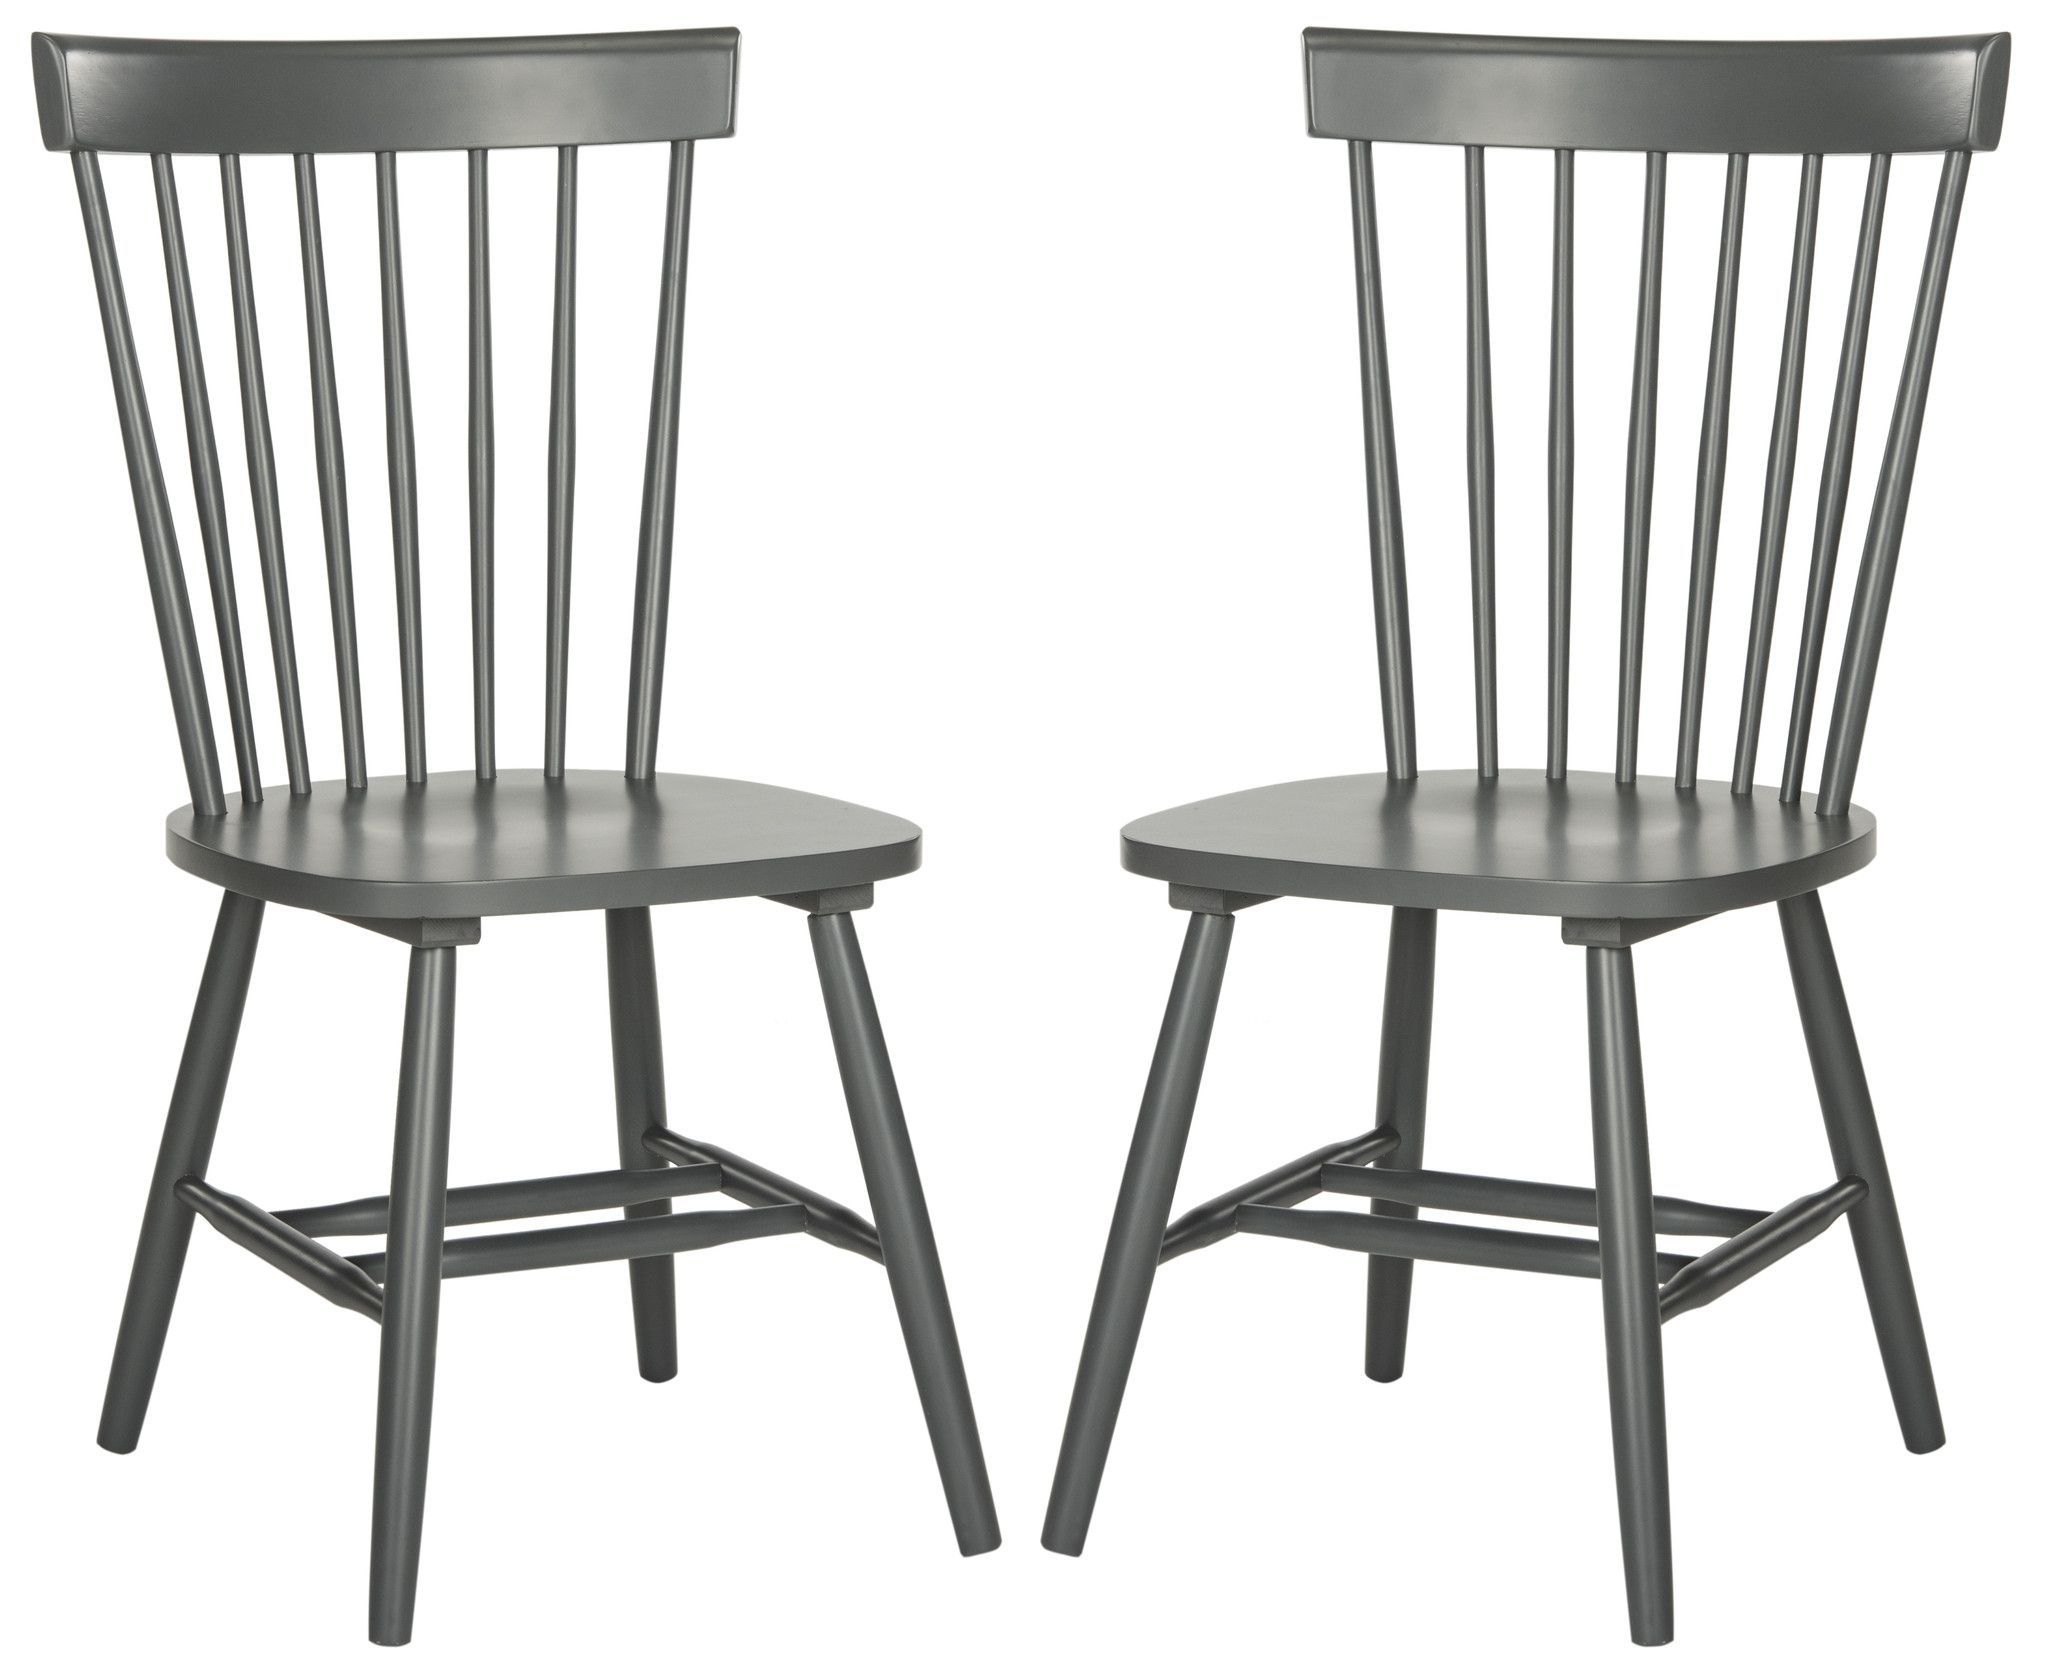 Safavieh Parker Spindle Dining Chair Set 2